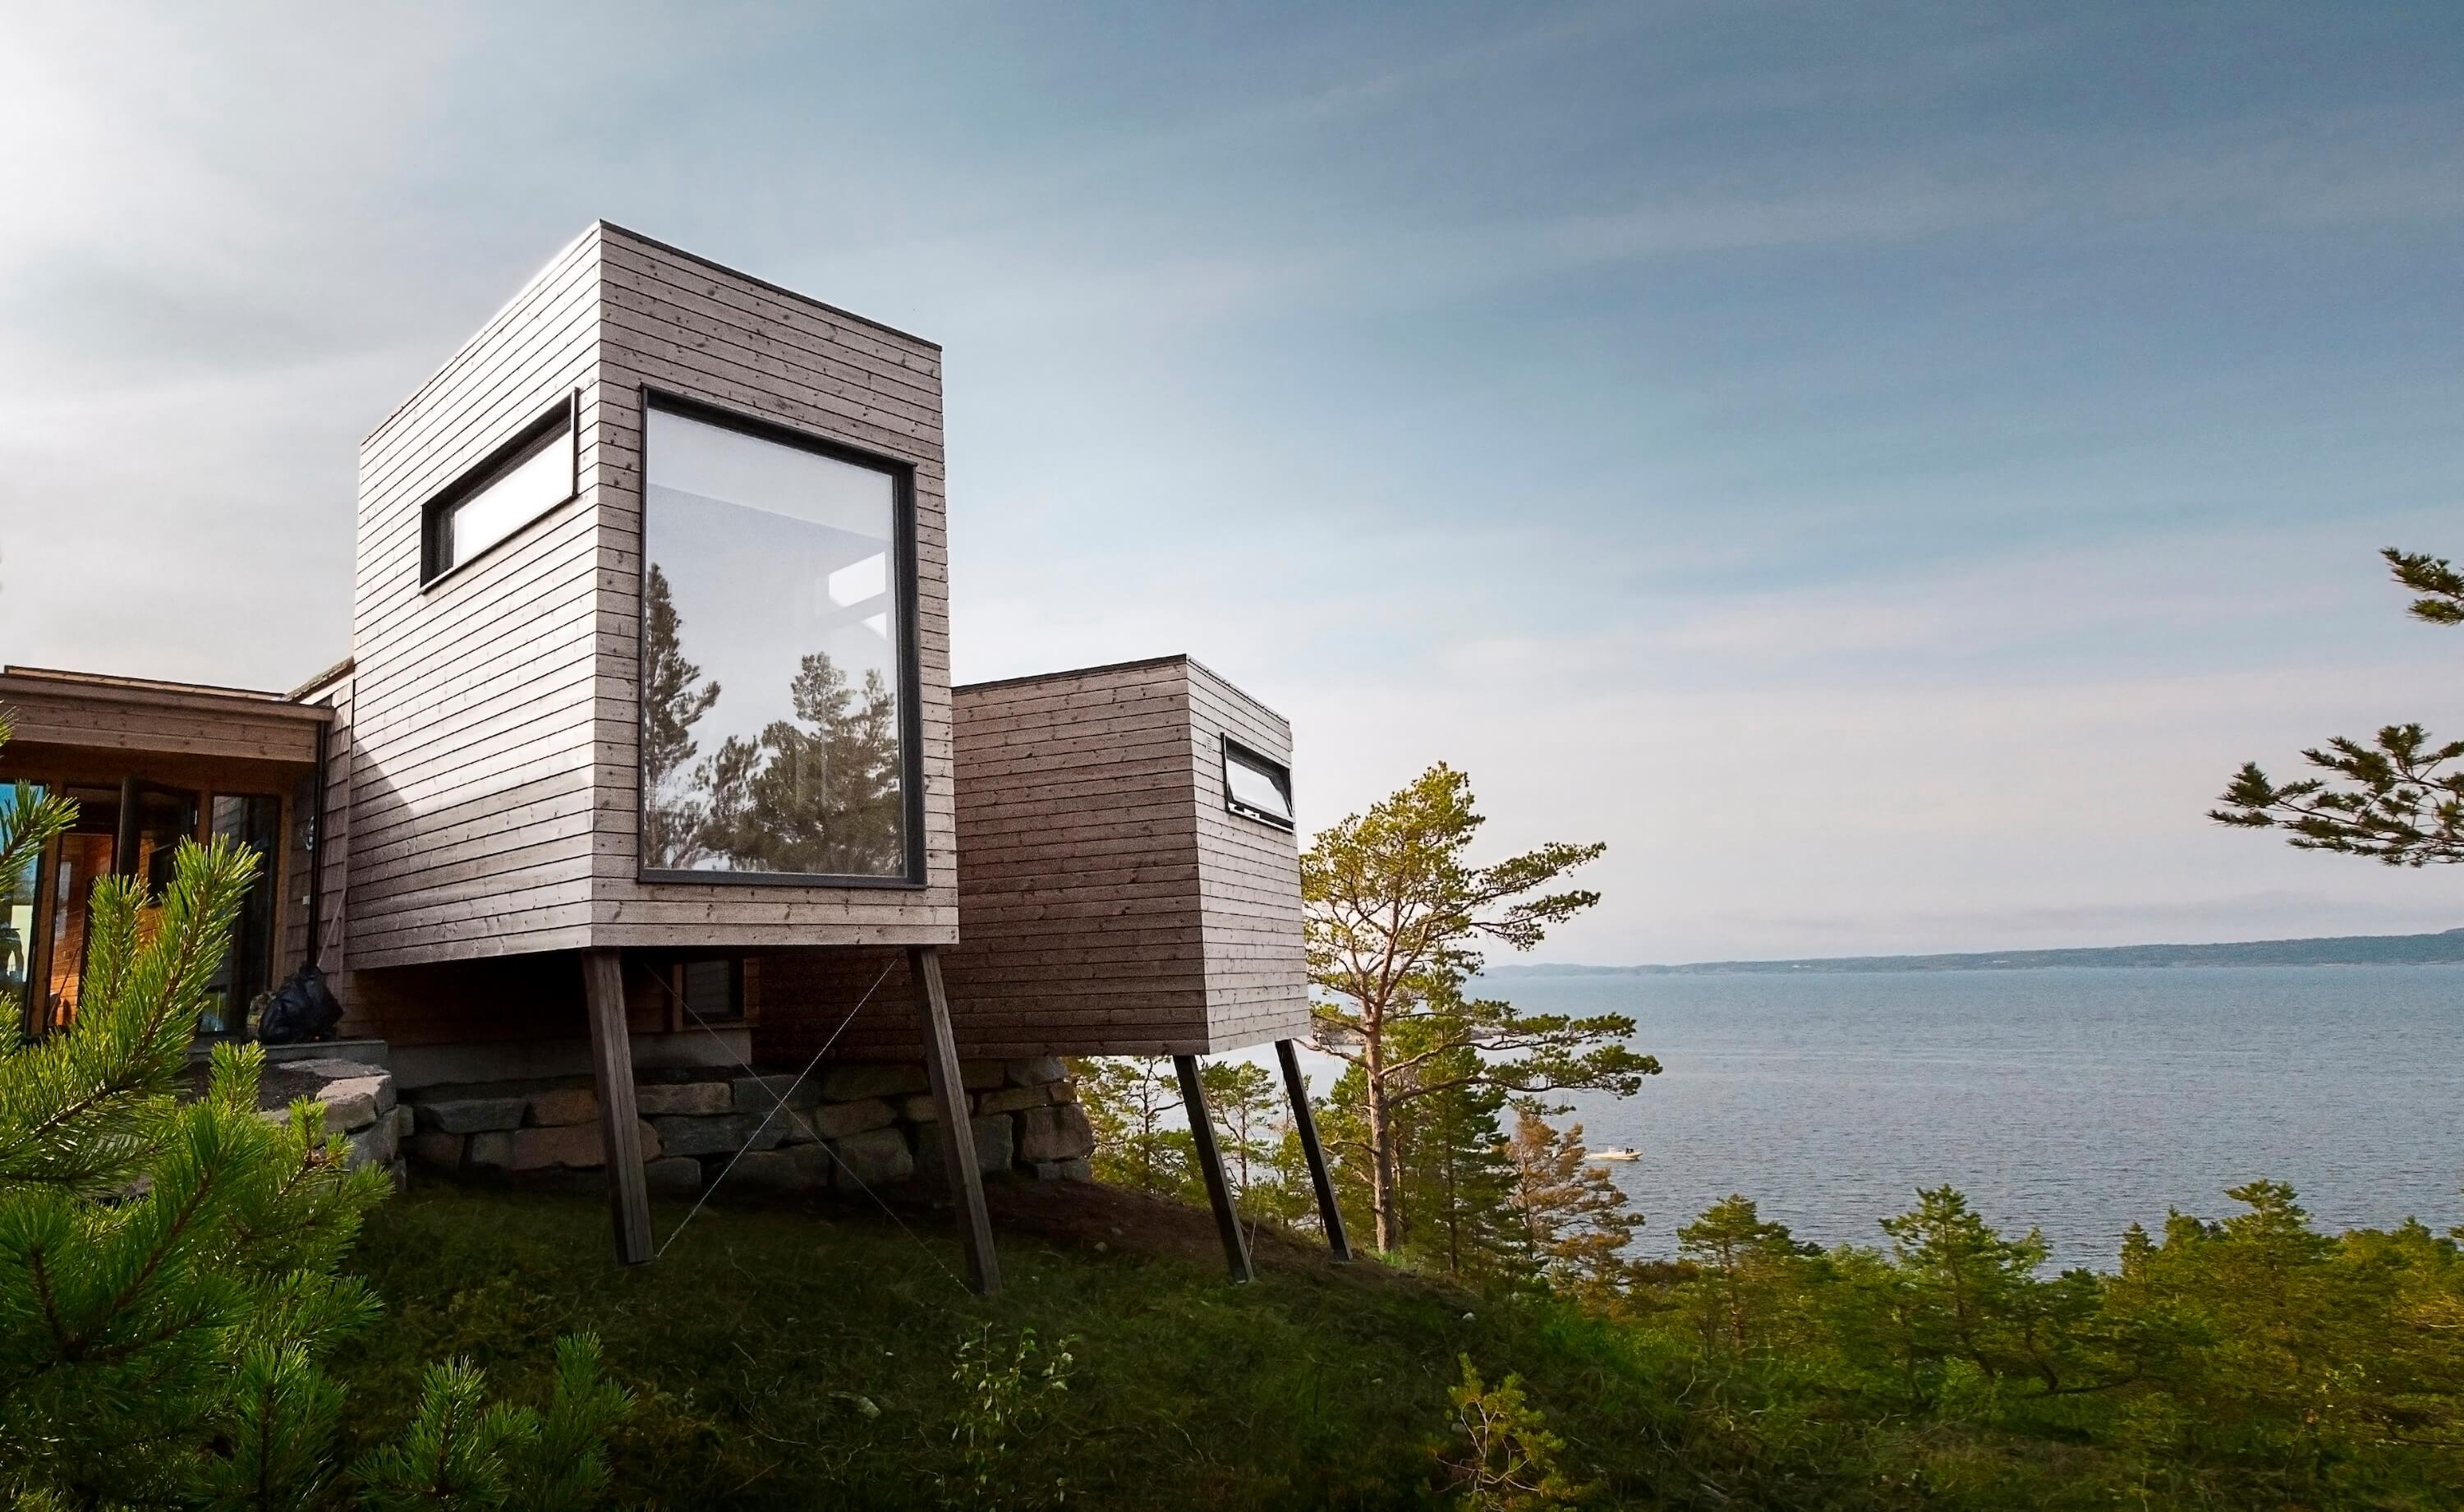 Cabin Straumsnes by Rever & Drage Architects